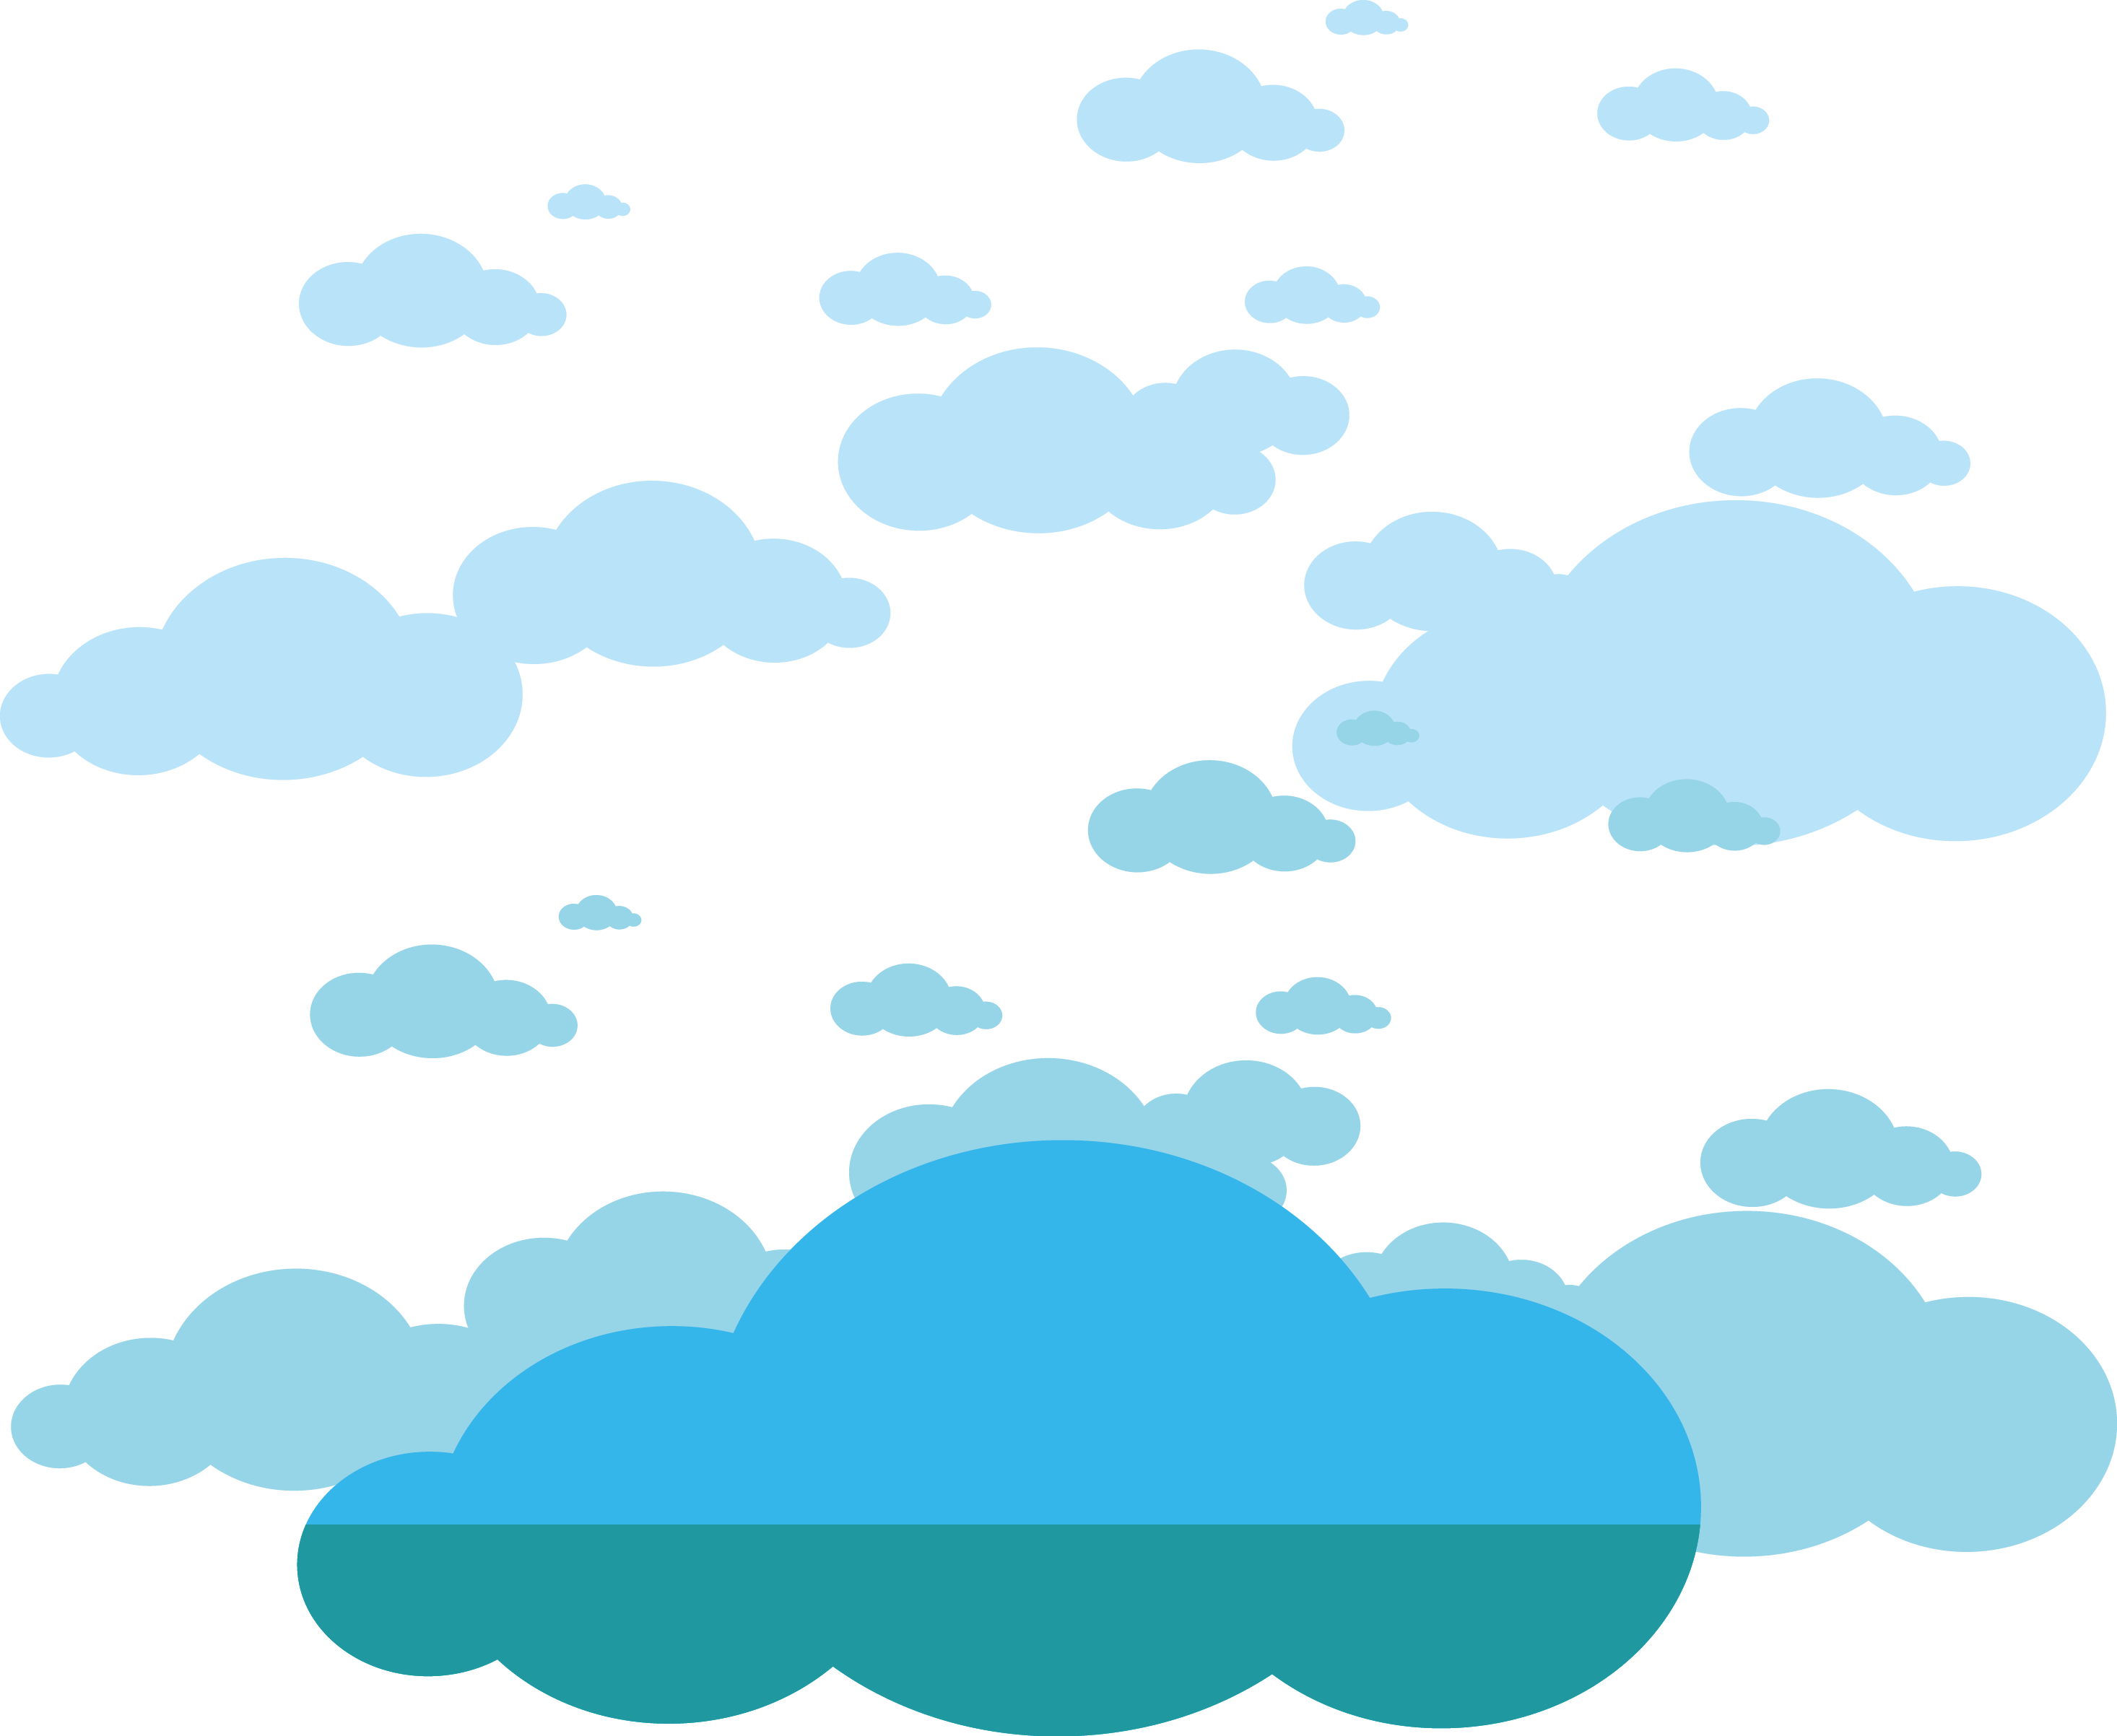 Clouds material transprent free. Cloud vector png